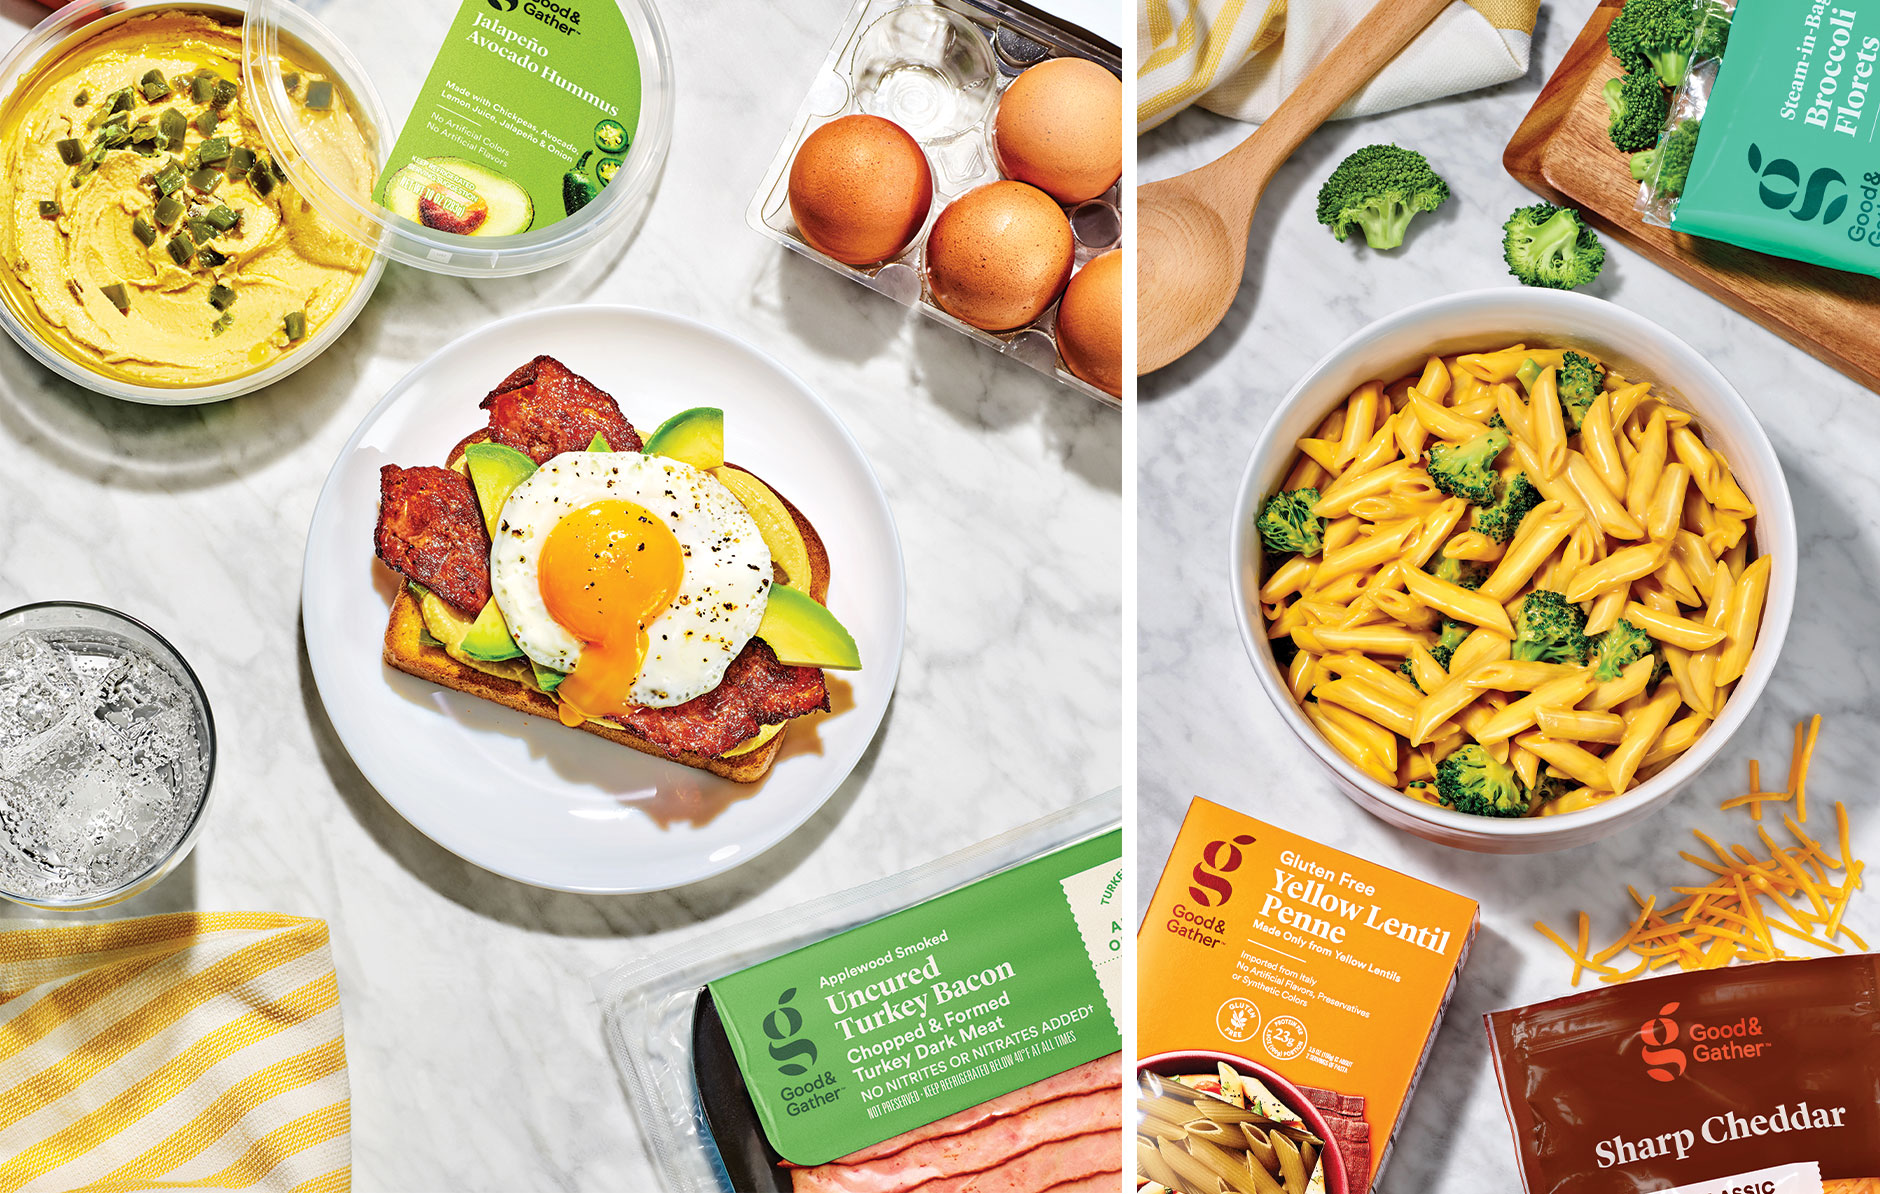 Two lifestyle images show Good and Gather products used to make a breakfast sandwich with hummus, eggs and turkey bacon and a bowl of mac n' cheese with broccoli